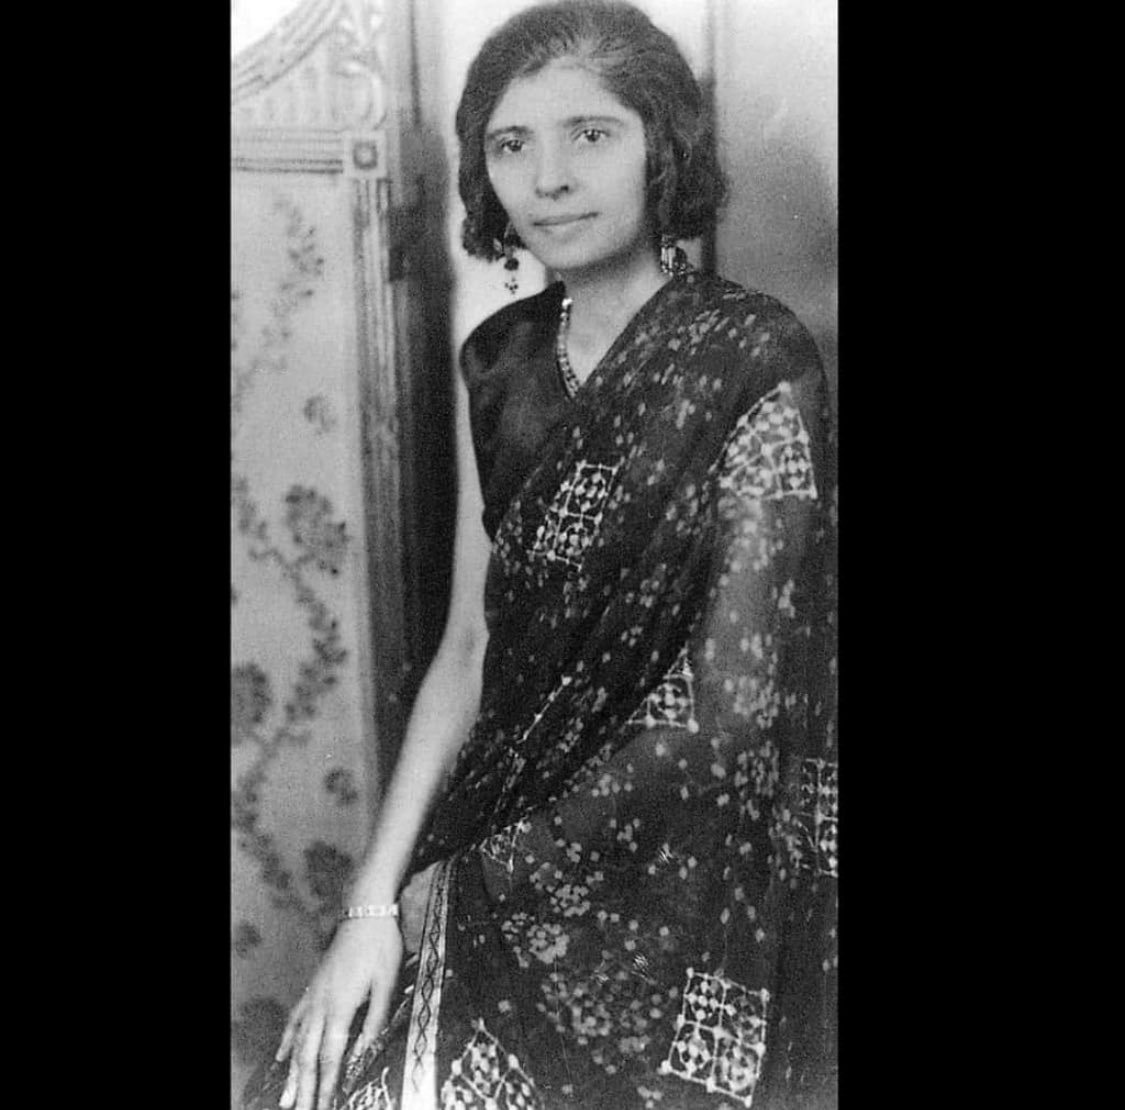 They sent a broken ambulance to #Jinnah Sb.  If they could do that then talk of their role in the death of #FatimaJinnah might be true.   We need answers. https://t.co/B0g7oDDyPZ